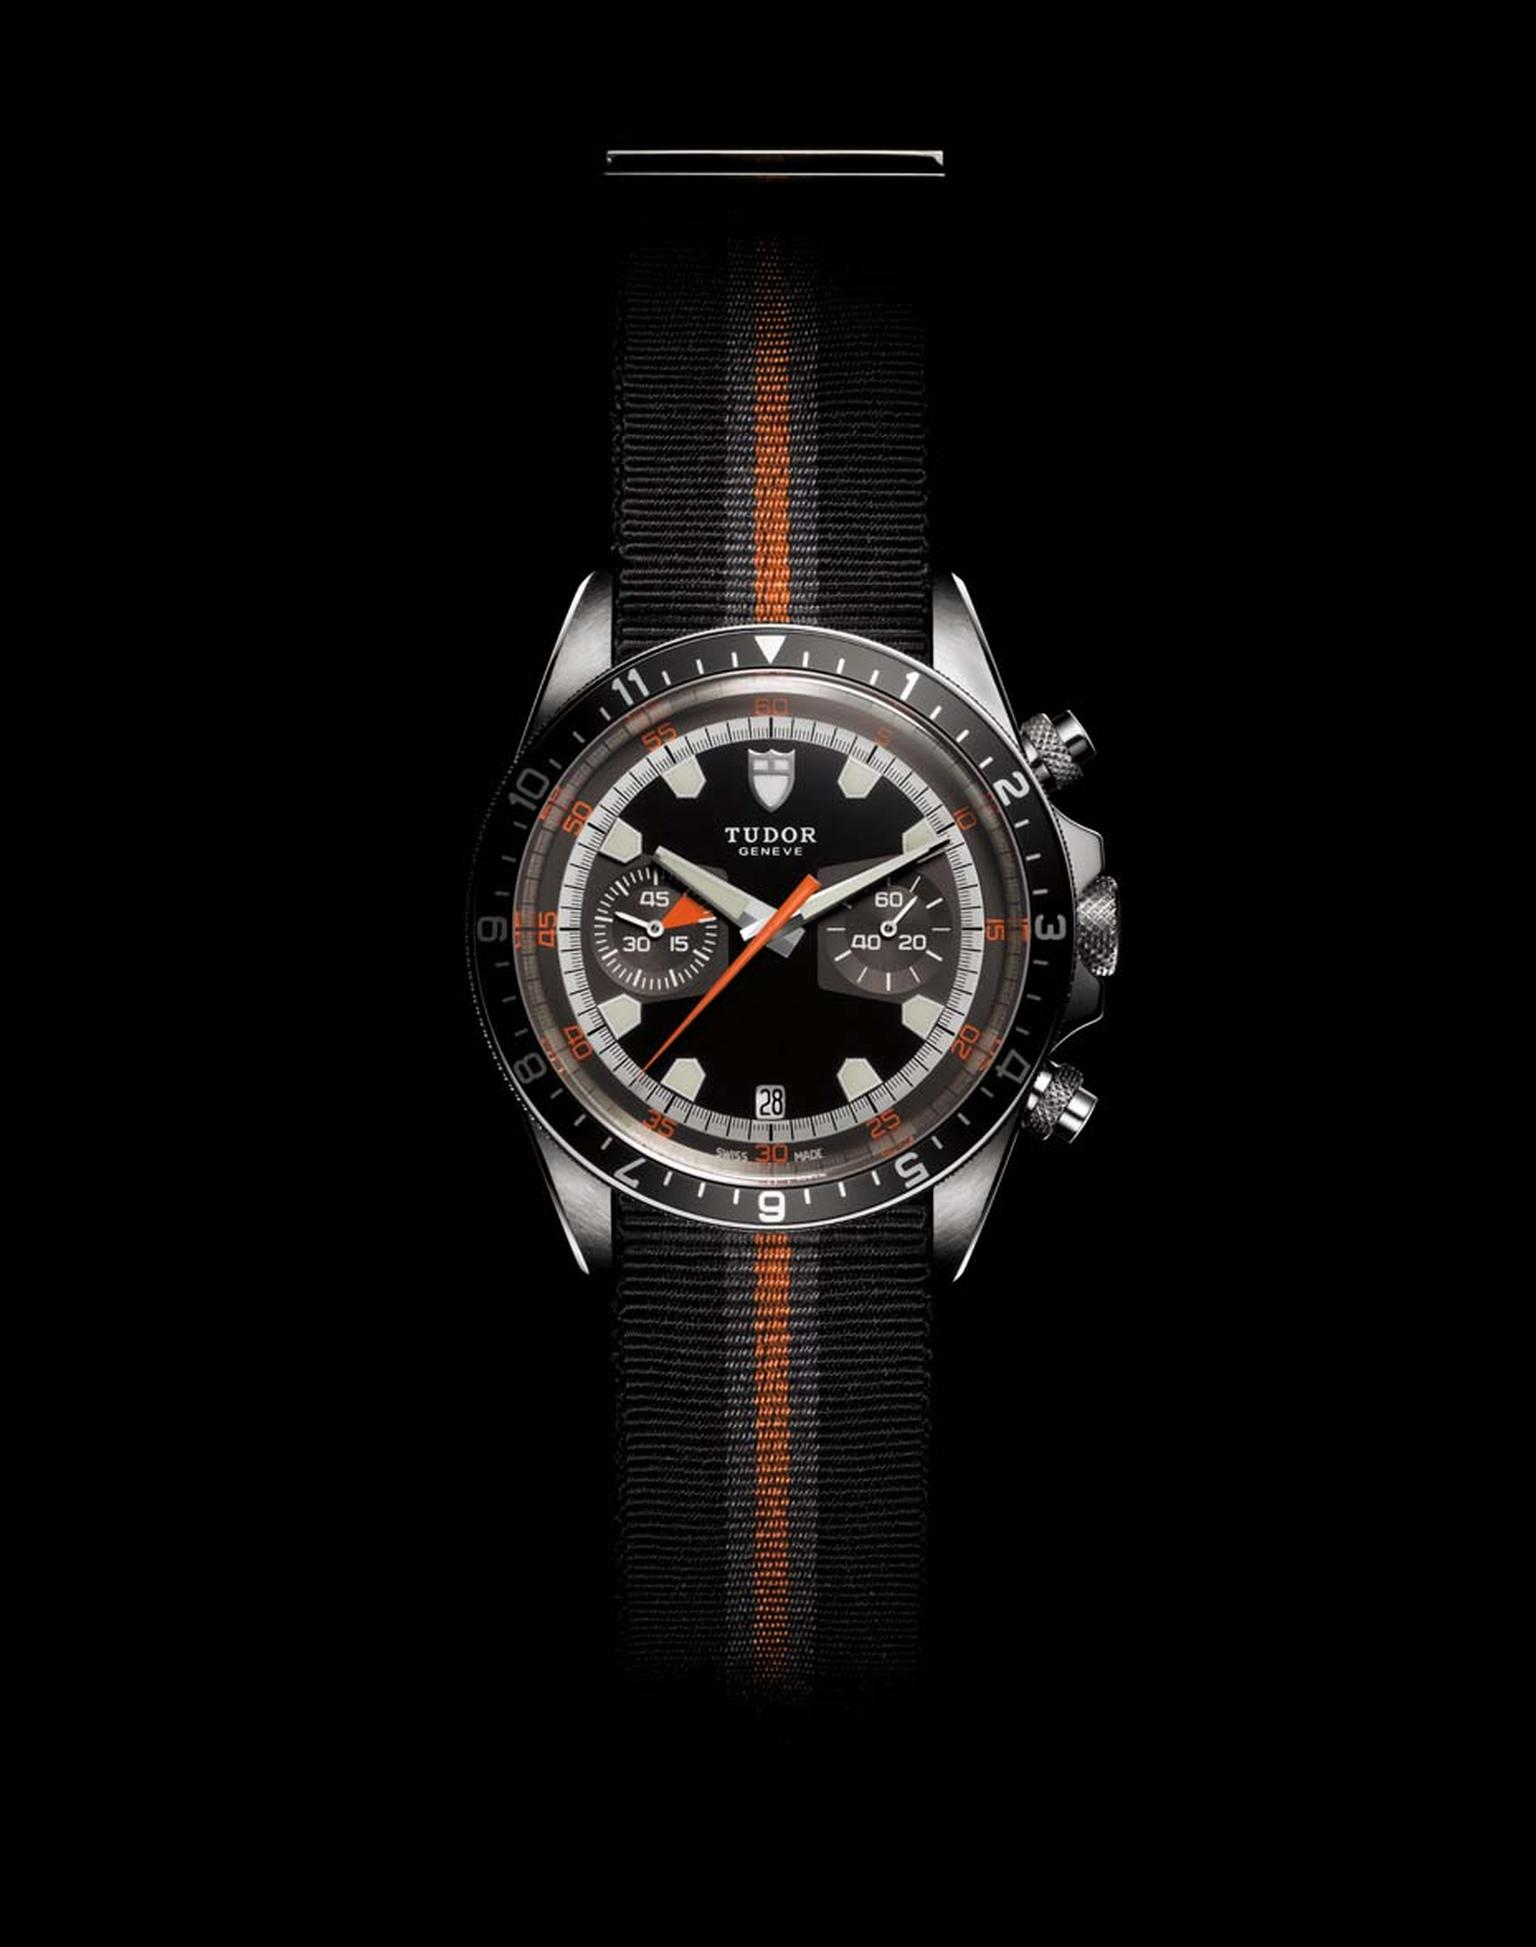 Reflecting the design of the original 1970s Chrono, the retro Tudor Heritage Chrono watch features a mechanical alarm as well as a black, grey and orange fabric strap, with a seat belt-inspired buckle.